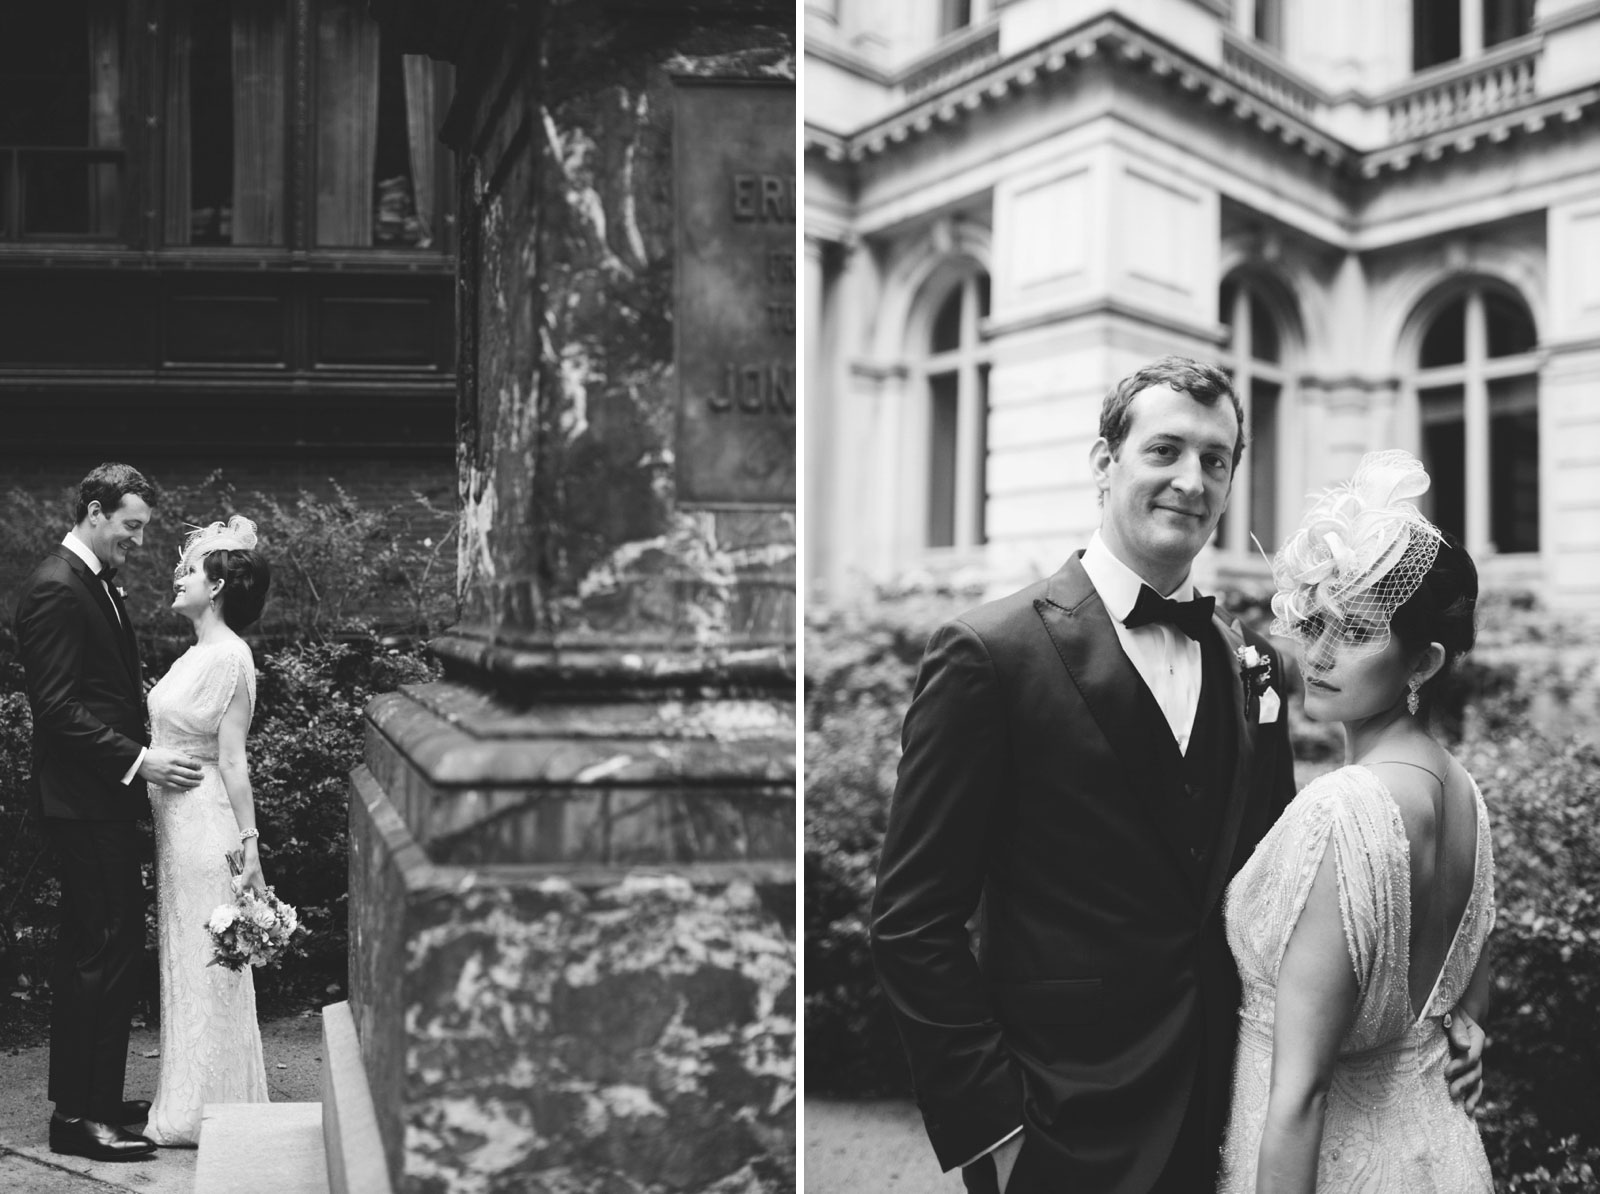 classic black and white vintage-inspired bride and groom portraits with natural light